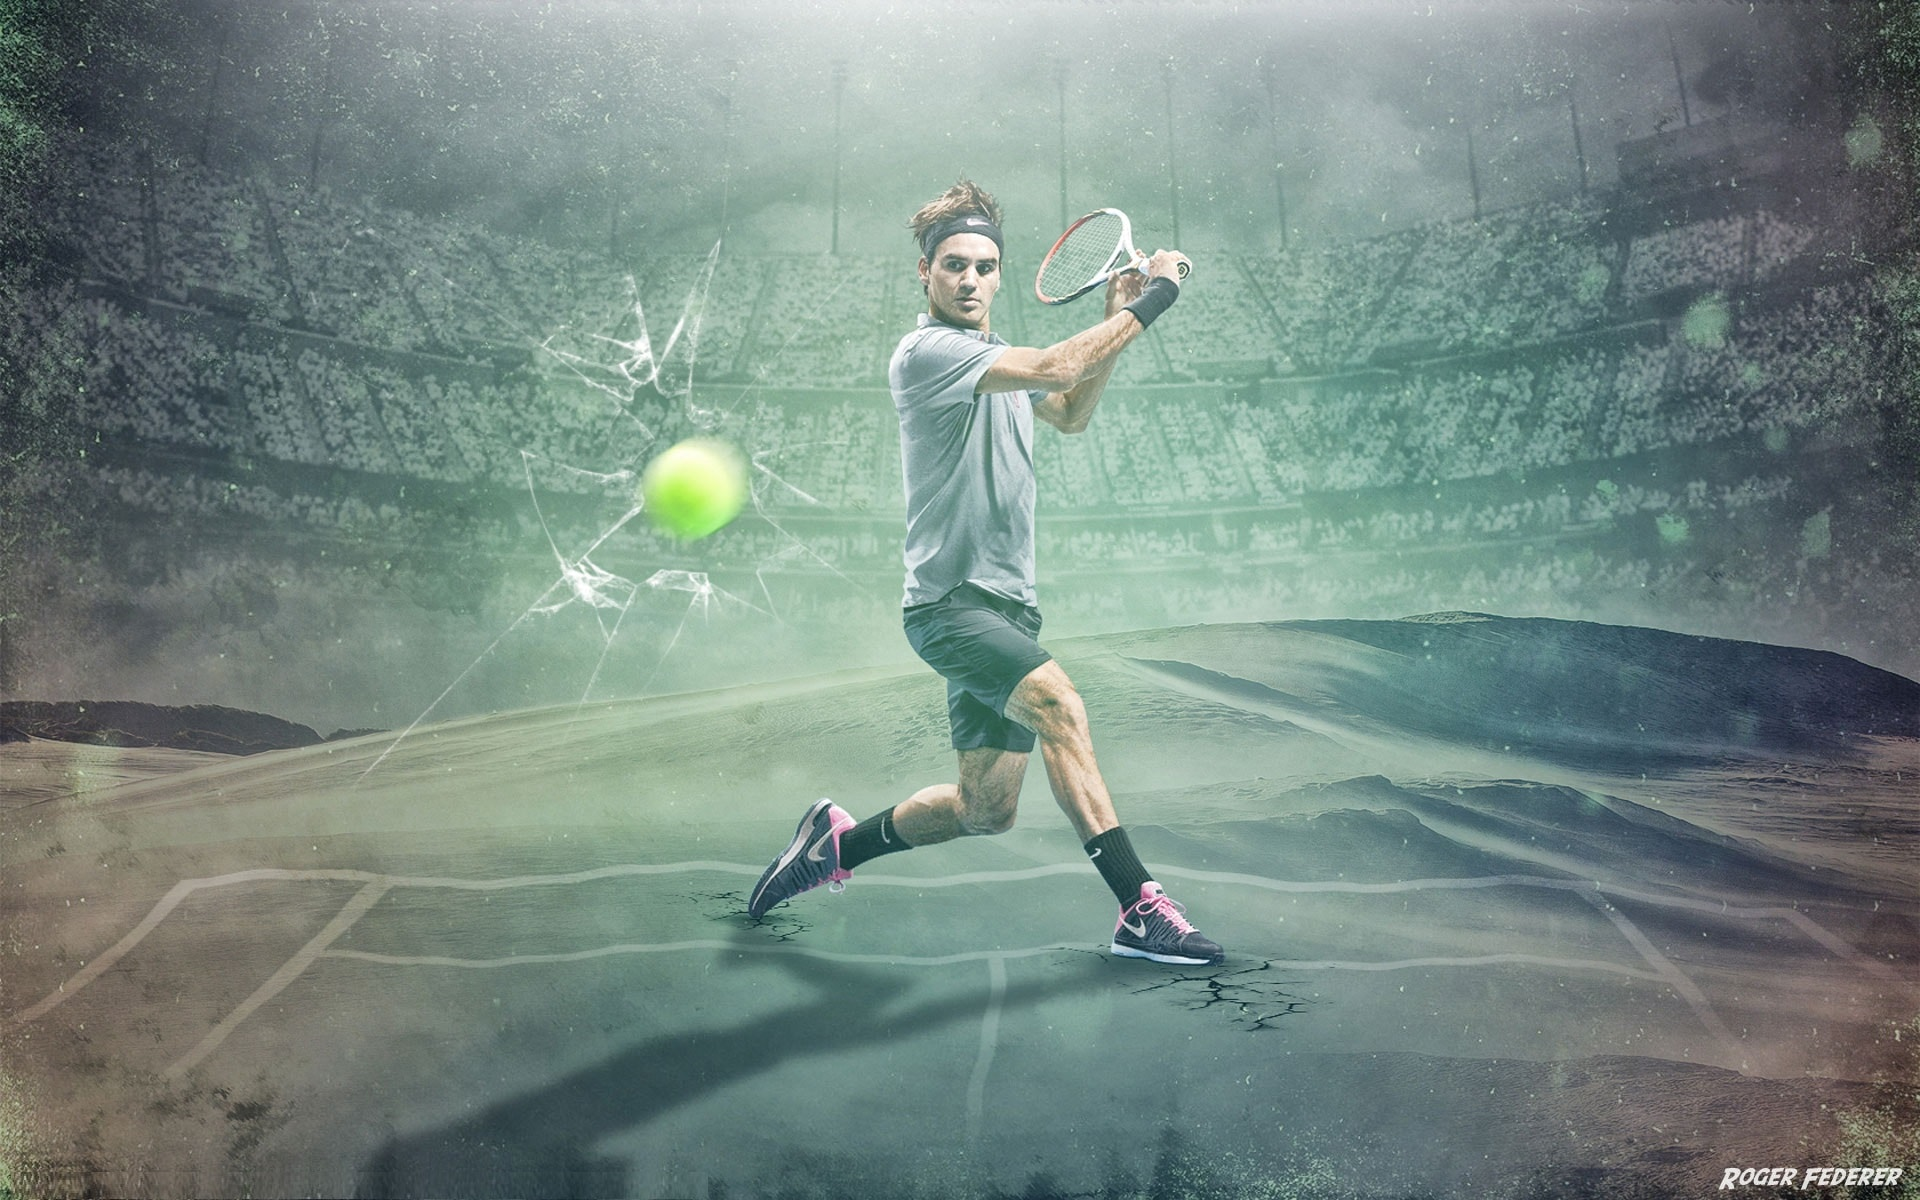 Roger Federer HD Wallpapers 7wallpapersnet 1920x1200